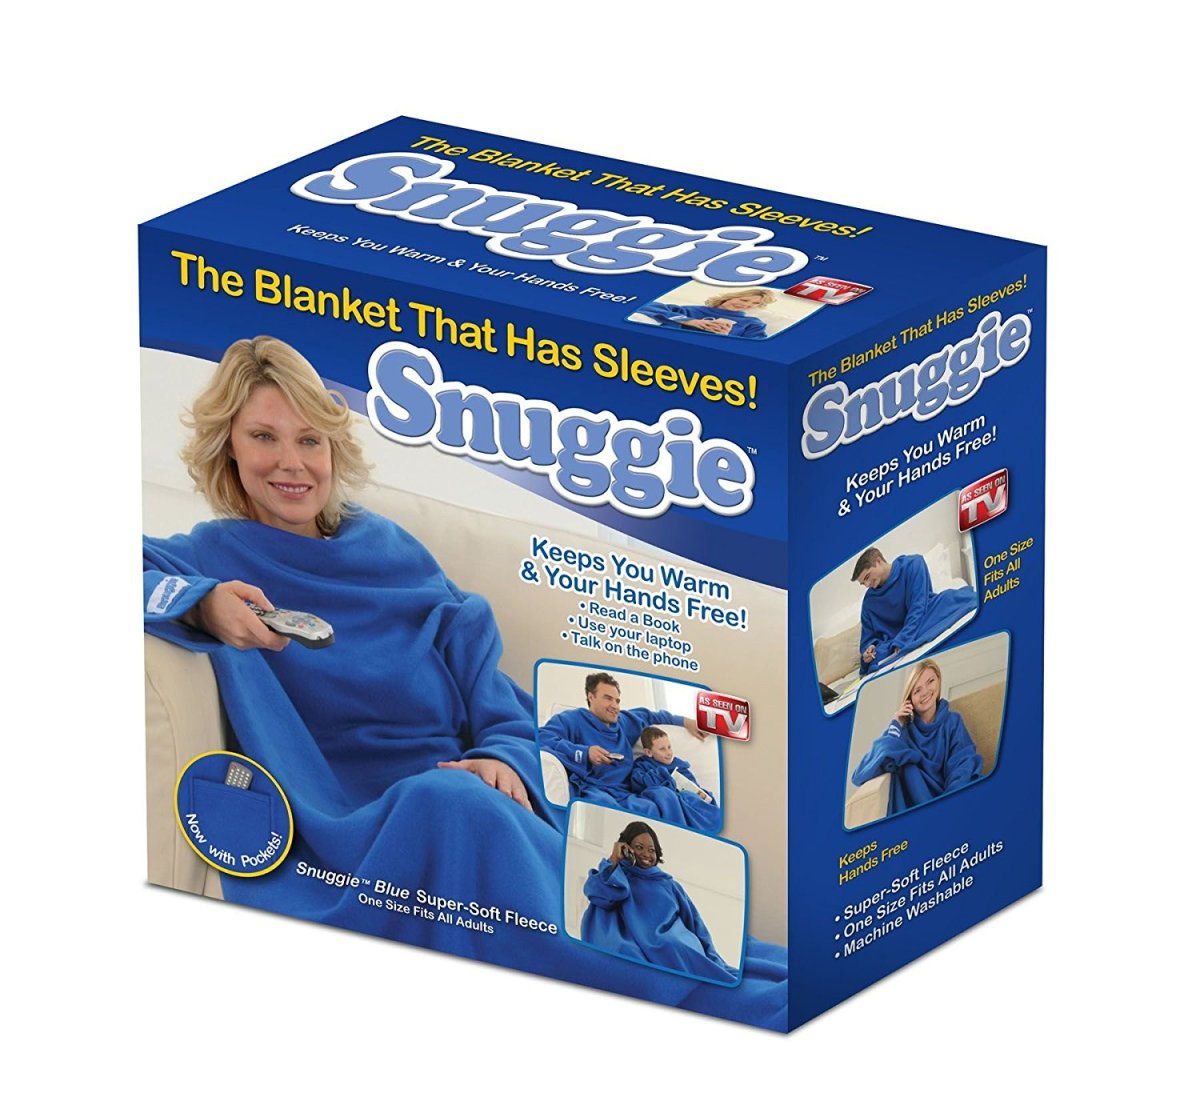 Bought a Snuggie or Magic Mesh Door? The FTC Is Sending $7.2 Million in Refund Checks